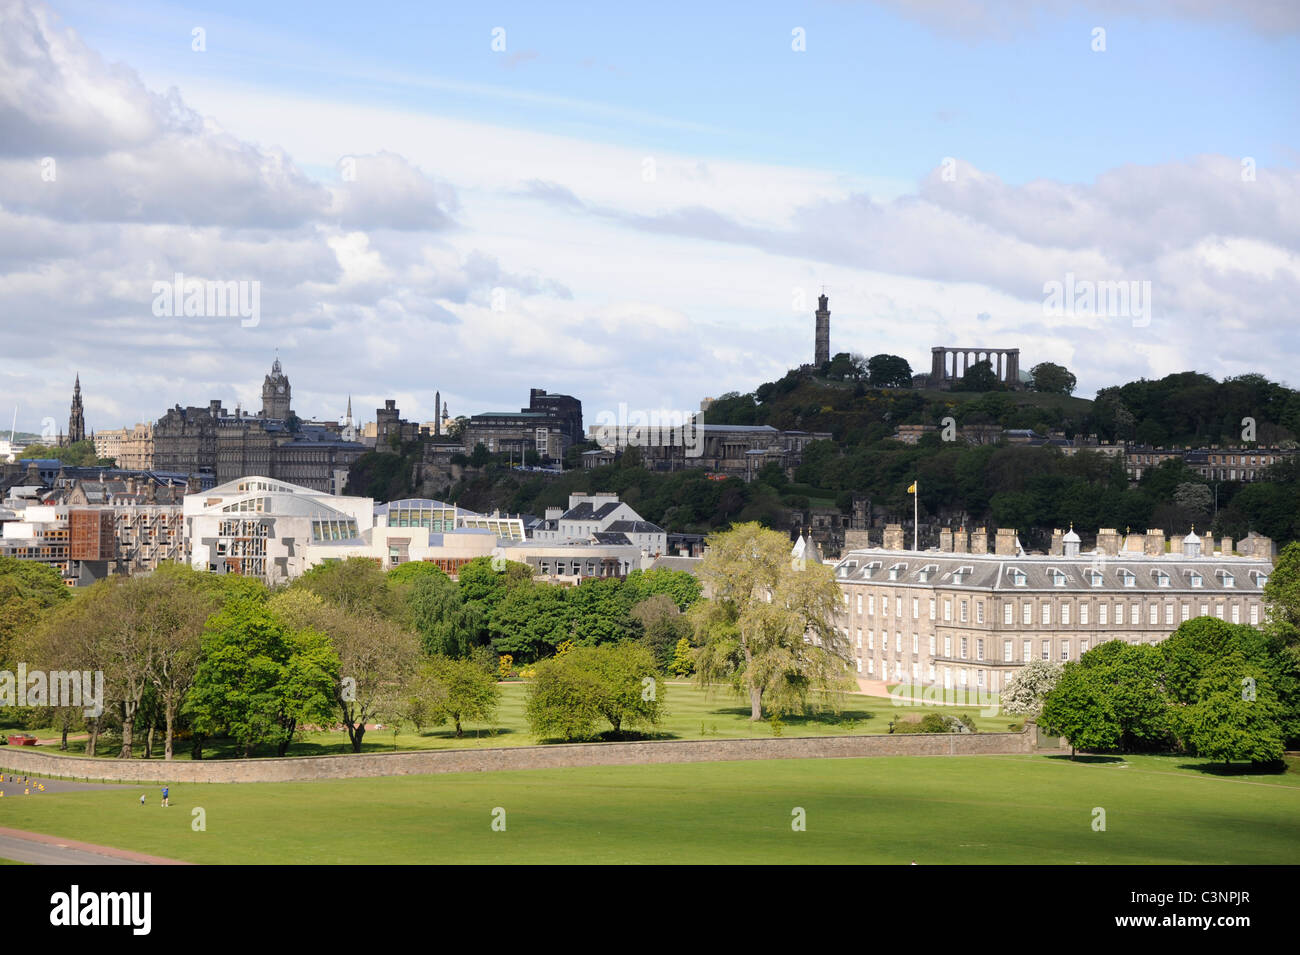 City of Edinburgh featuring the Scottish Parliament, Palace of Holyroodhouse and Calton Hill with Nelson's Monument - Stock Image